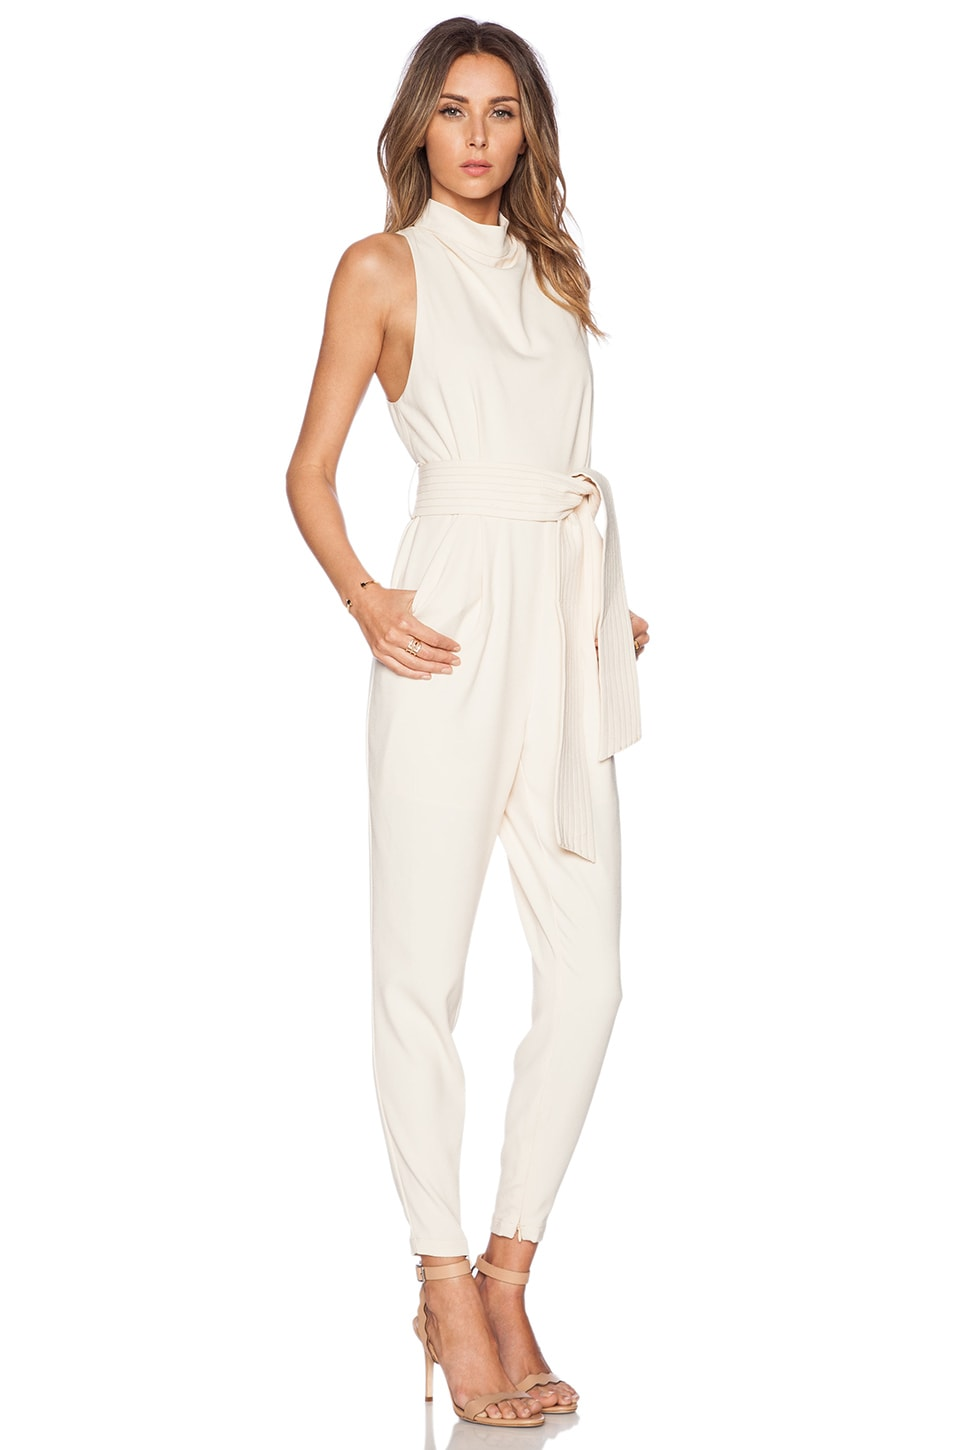 c meo chicago pantsuit in shell revolve